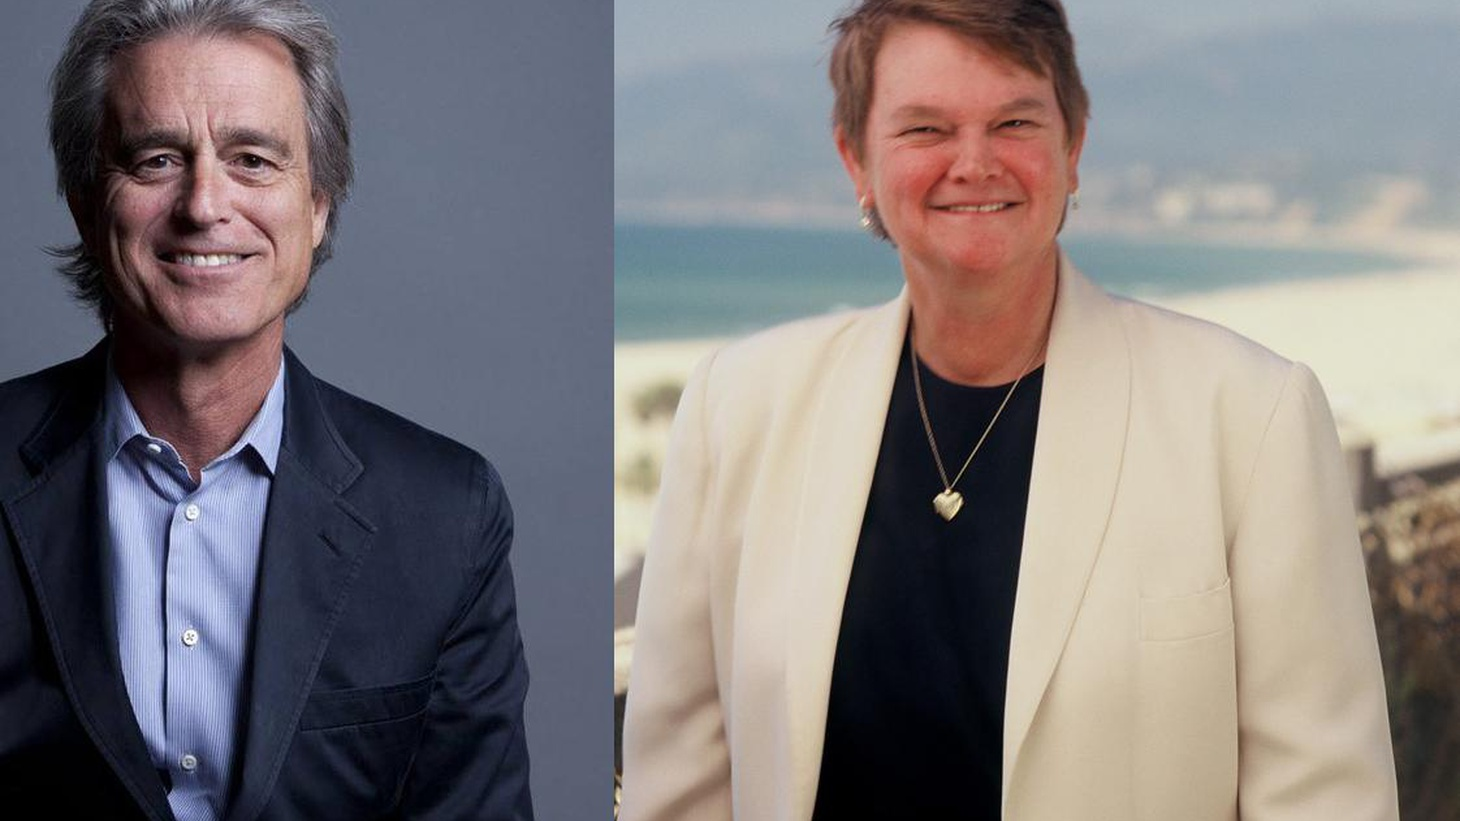 We hear from Bobby Shriver and Sheila Kuehl, front-runners for the seat now occupied by LA County Supervisors Zev Yaroslavsky, who's termed out.